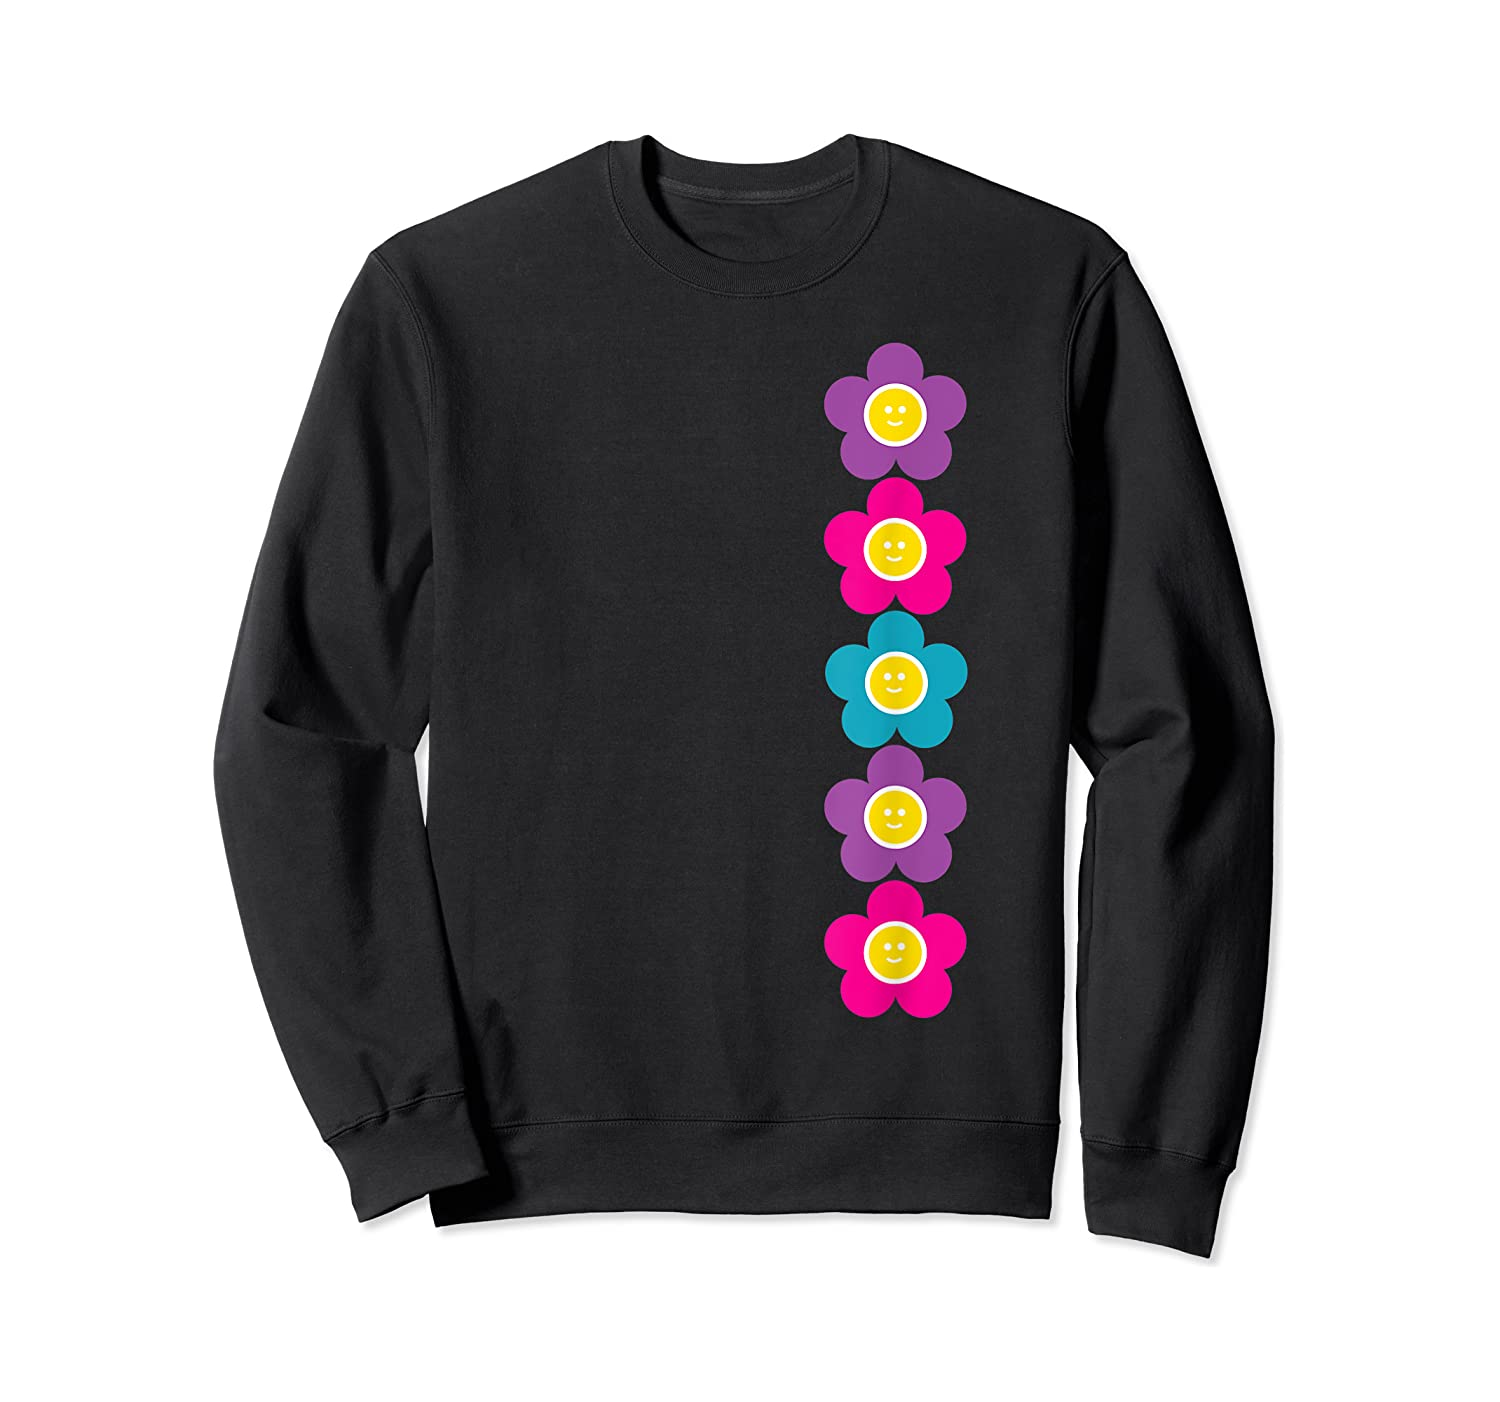 Daisy Flower Pattern Happy, Fun, Bright And Colorful Shirts Crewneck Sweater